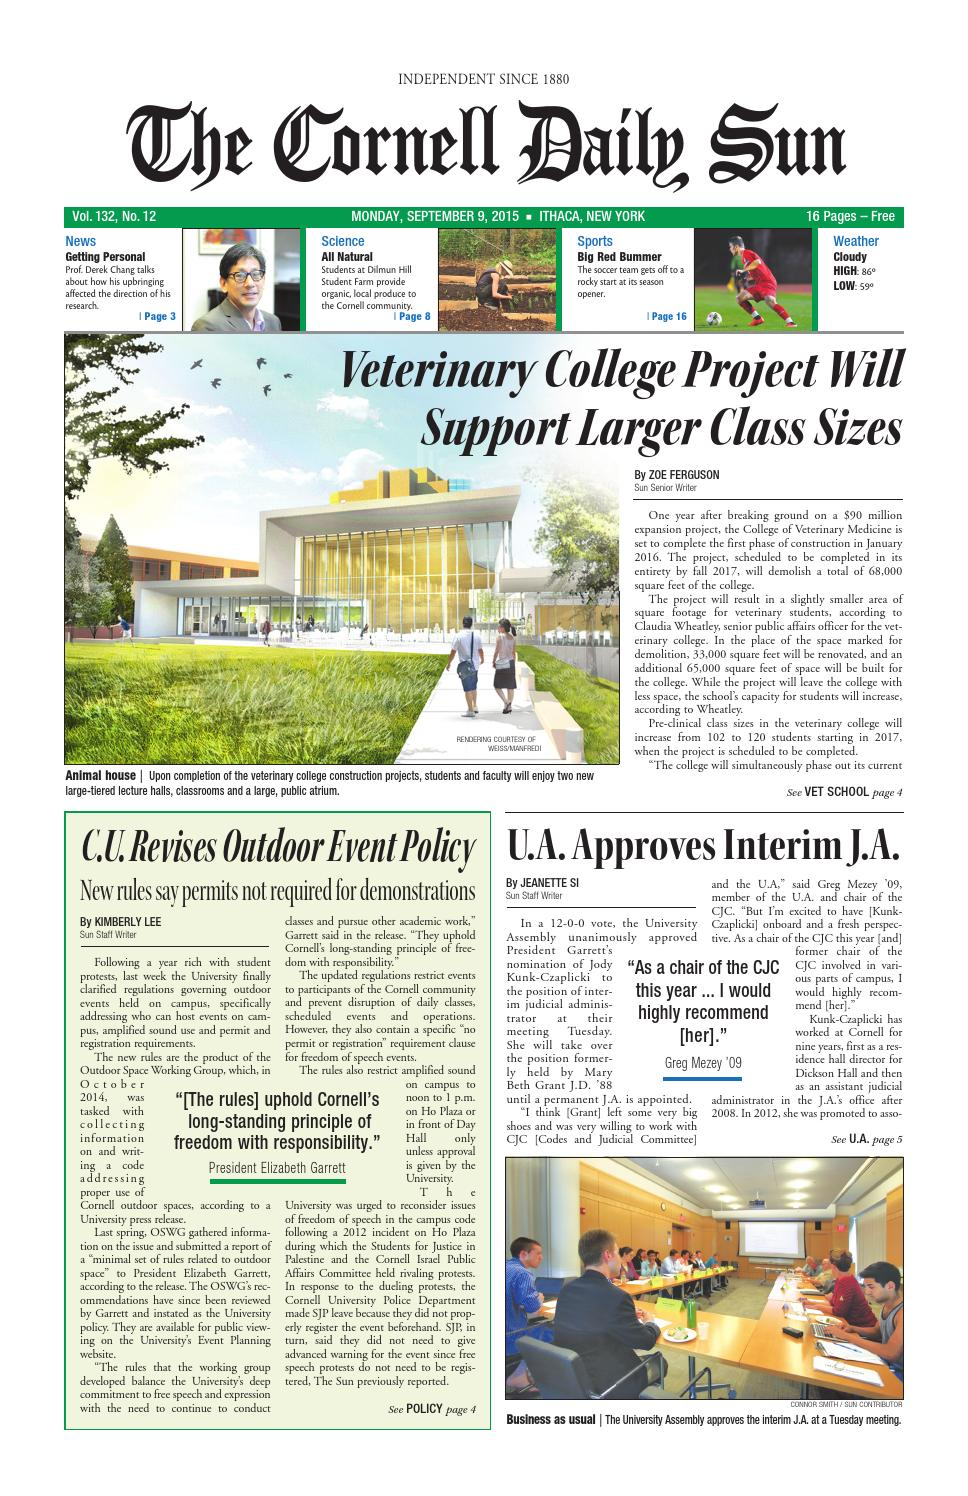 09 15 Entire Issue Hi Res By The Cornell Daily Sun